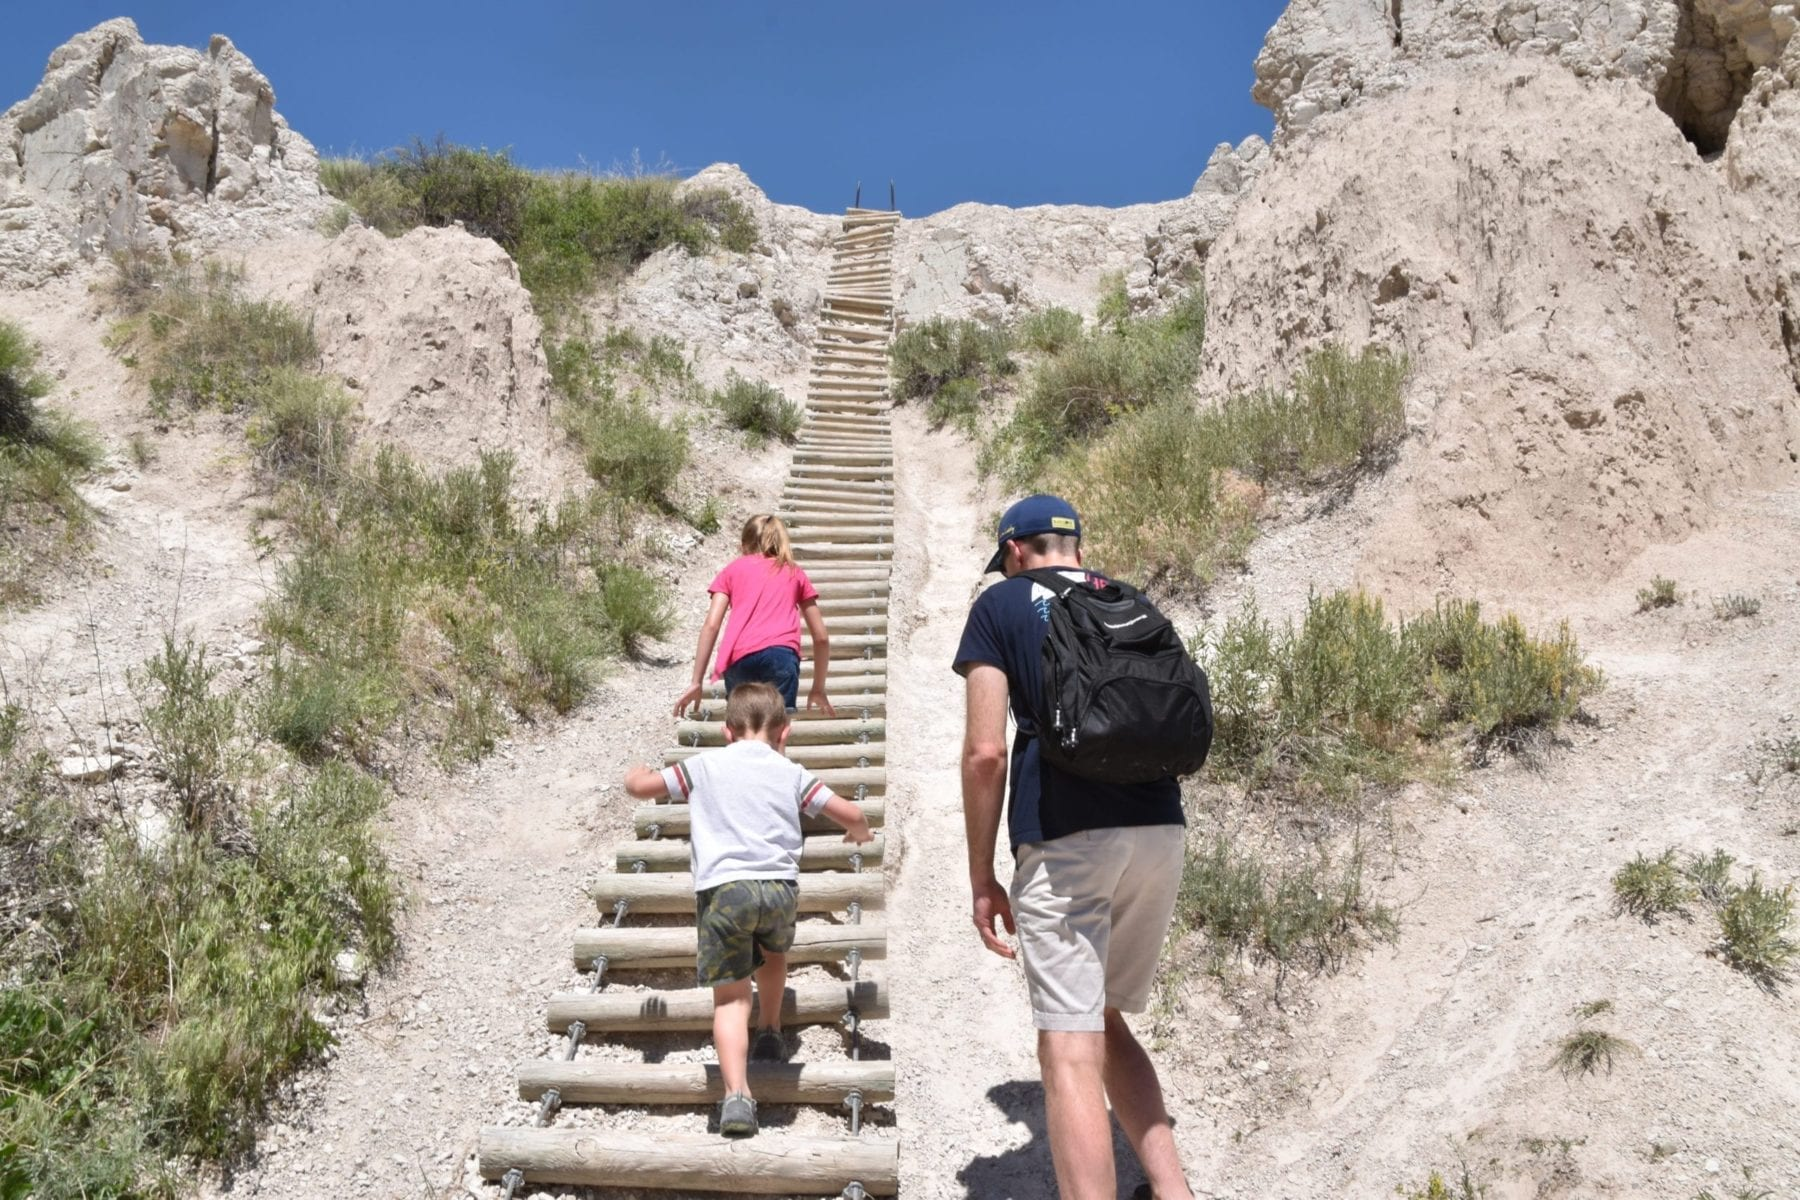 Notch ladder trail at the badlands National Park